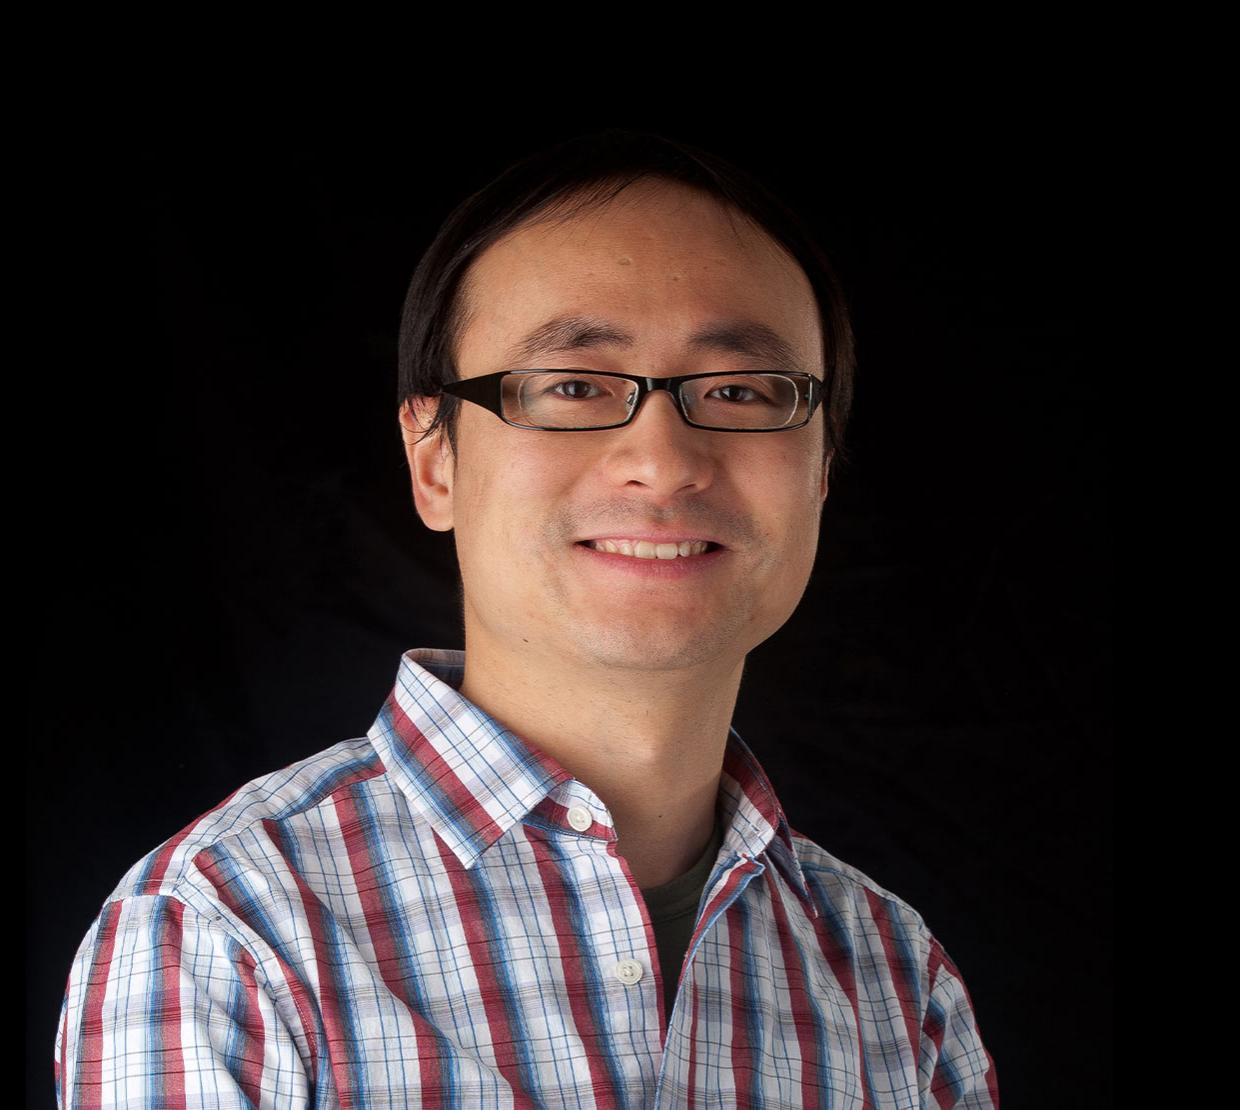 Chong Fang, standing in front of black backdrop